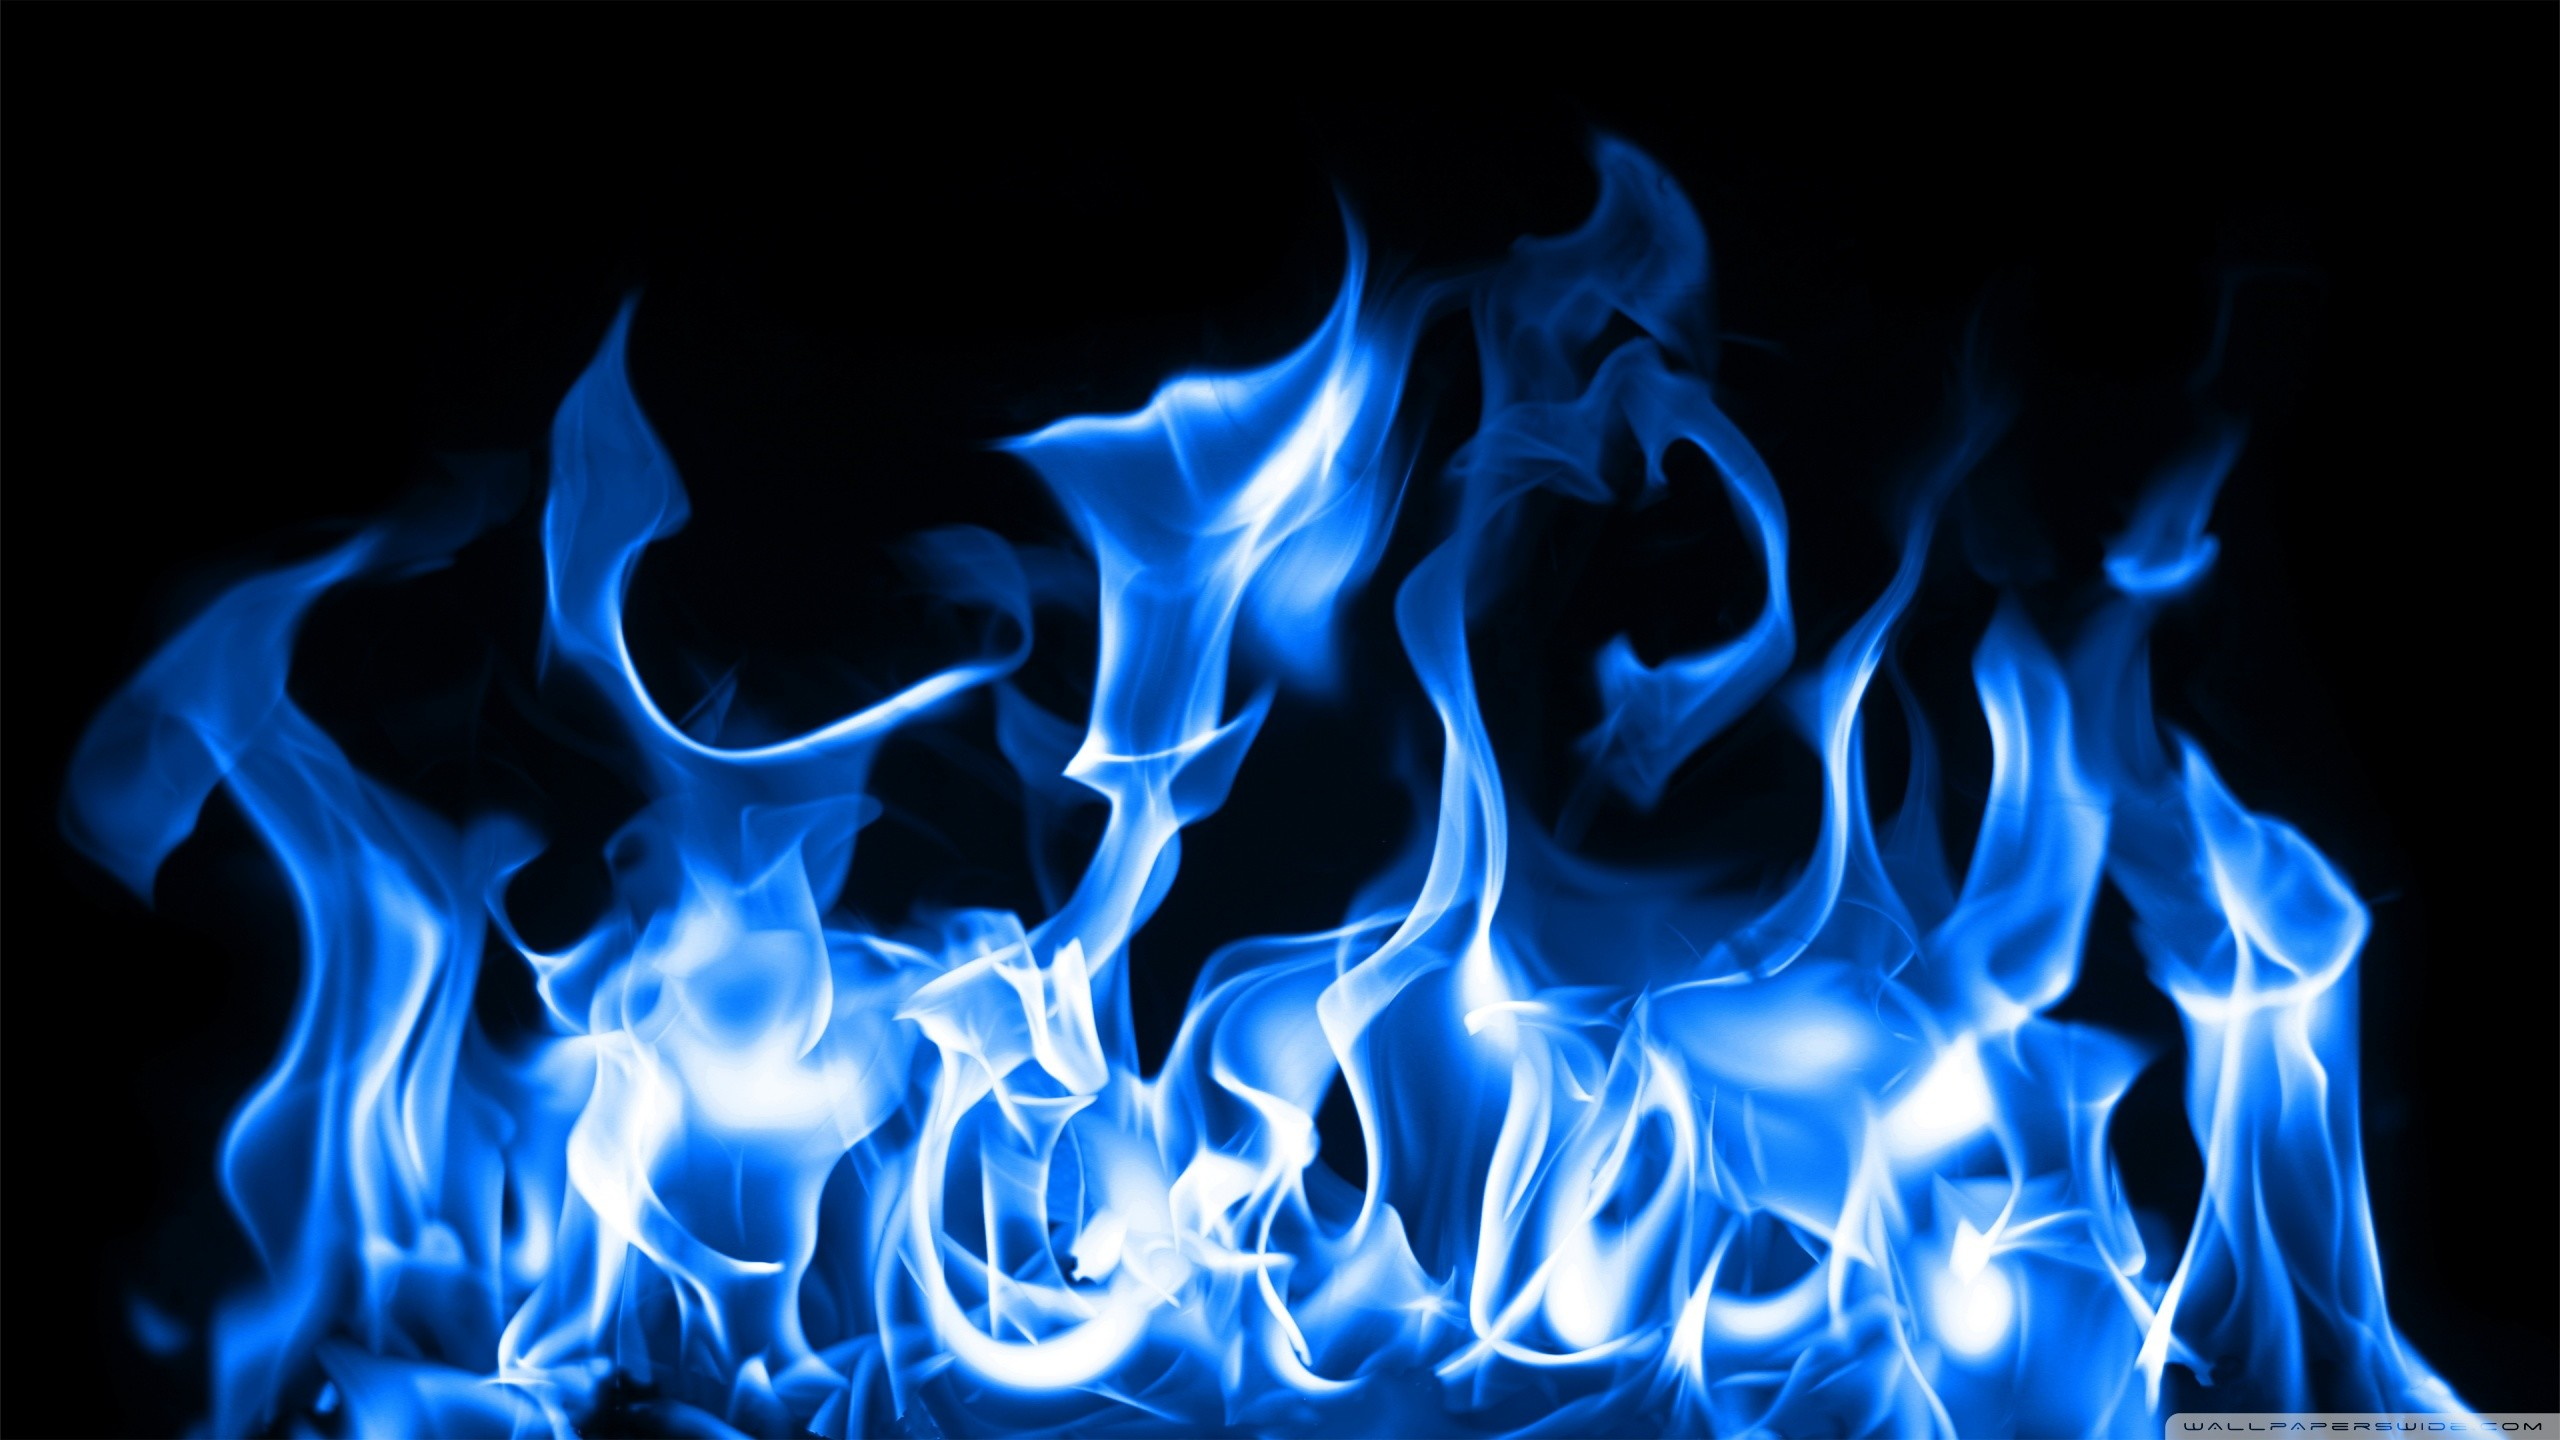 Blue Fire Wallpaper HD 70 Images